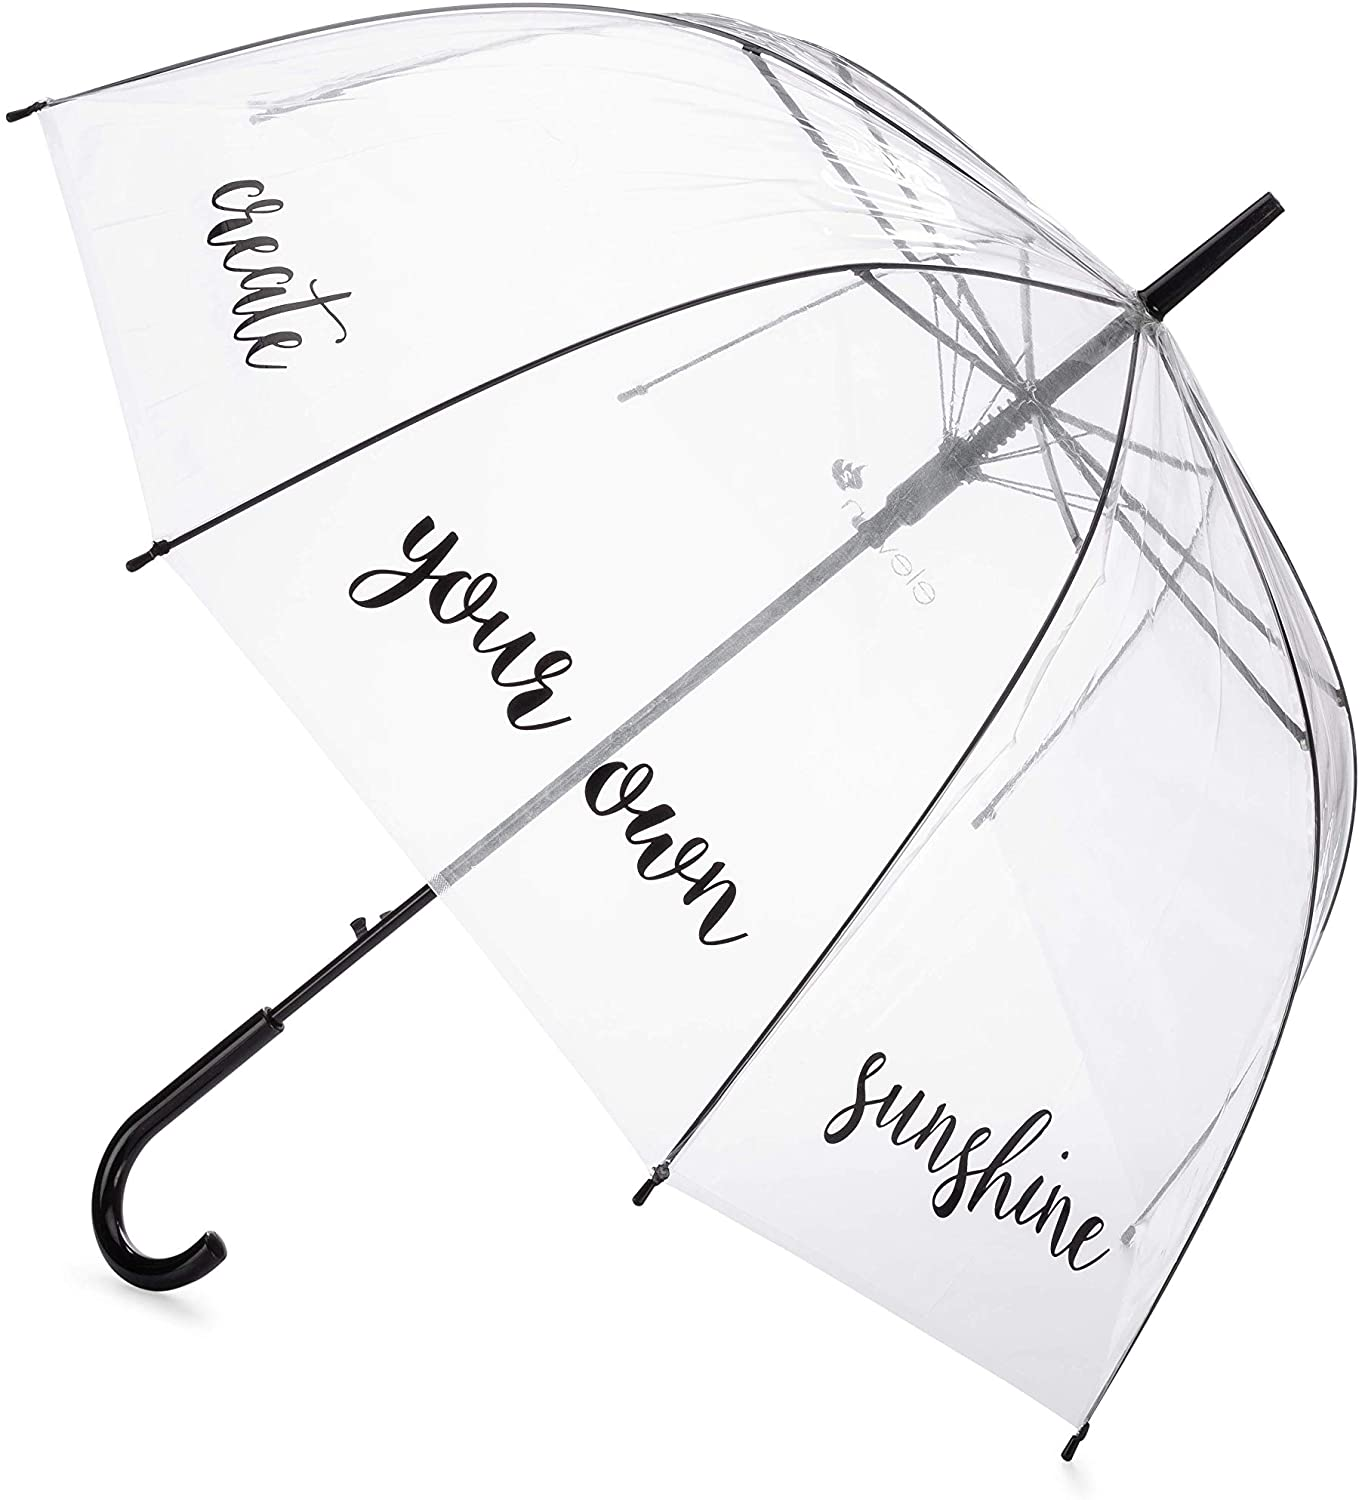 Eleven Squared Dome Shaped Umbrella for Kids, Adults, Teens - Clear Transparent See Through Protective Bubble Rain Canopy Handheld Umbrella with Black Handle, Create Your Own Sunshine Quote